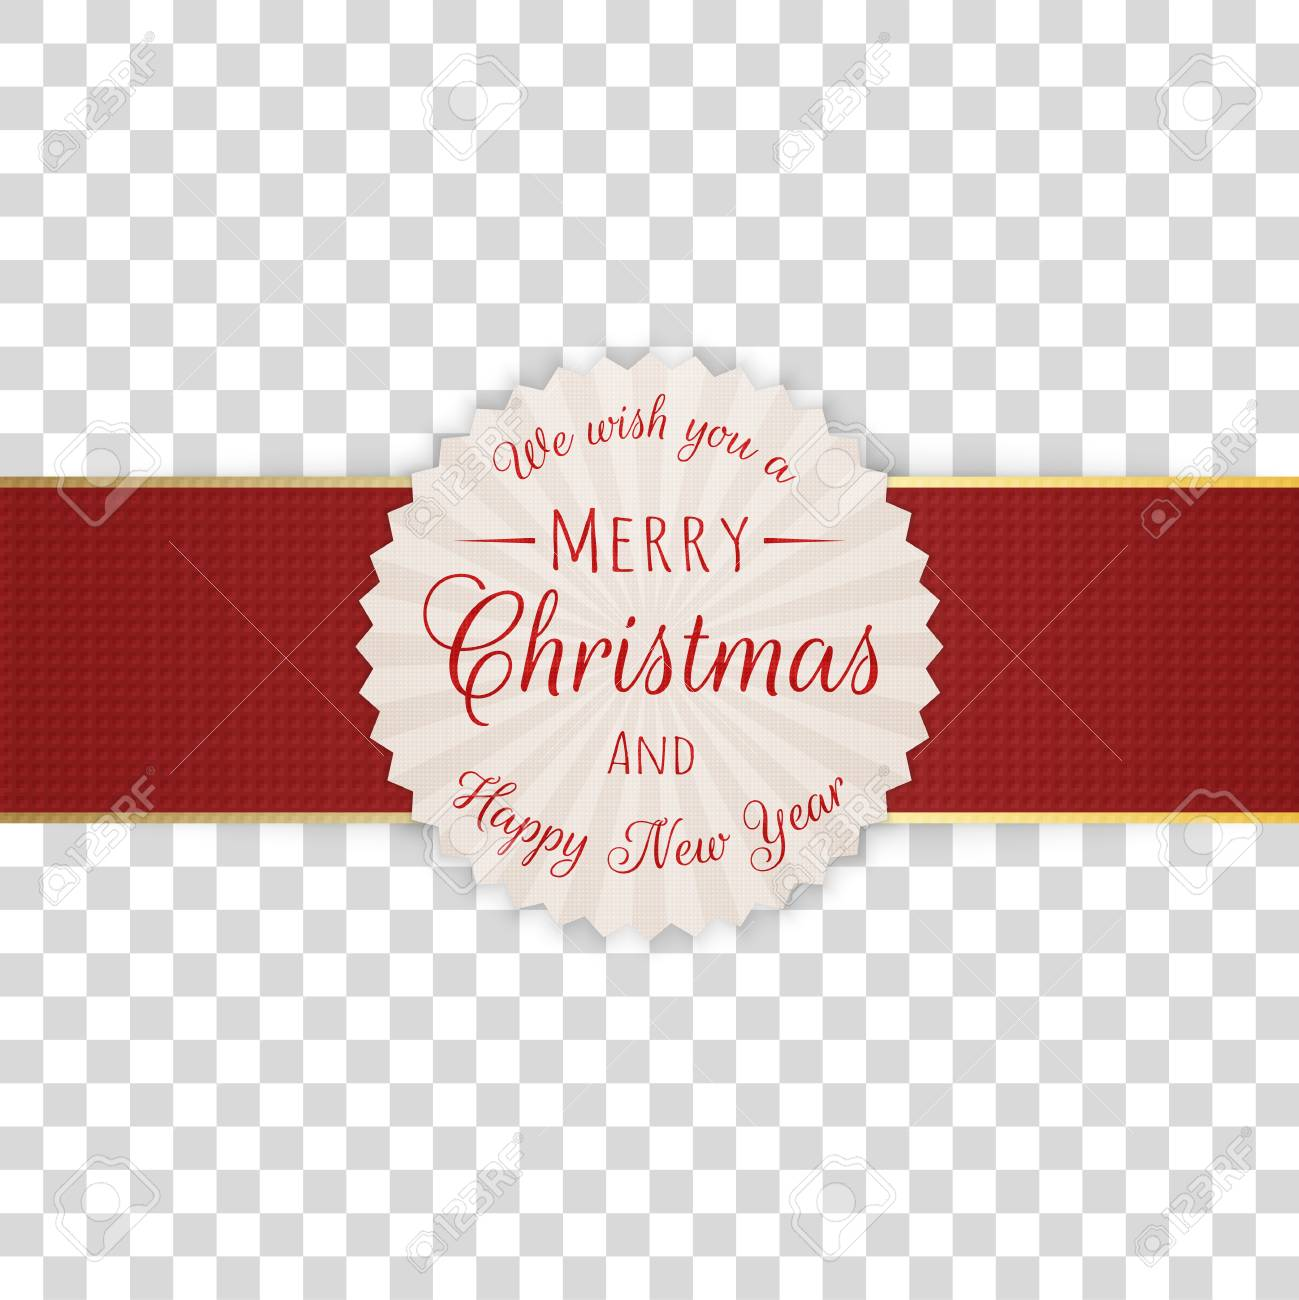 Merry Christmas No Background.Circle Merry Christmas Decorative Label With Text On Transparent